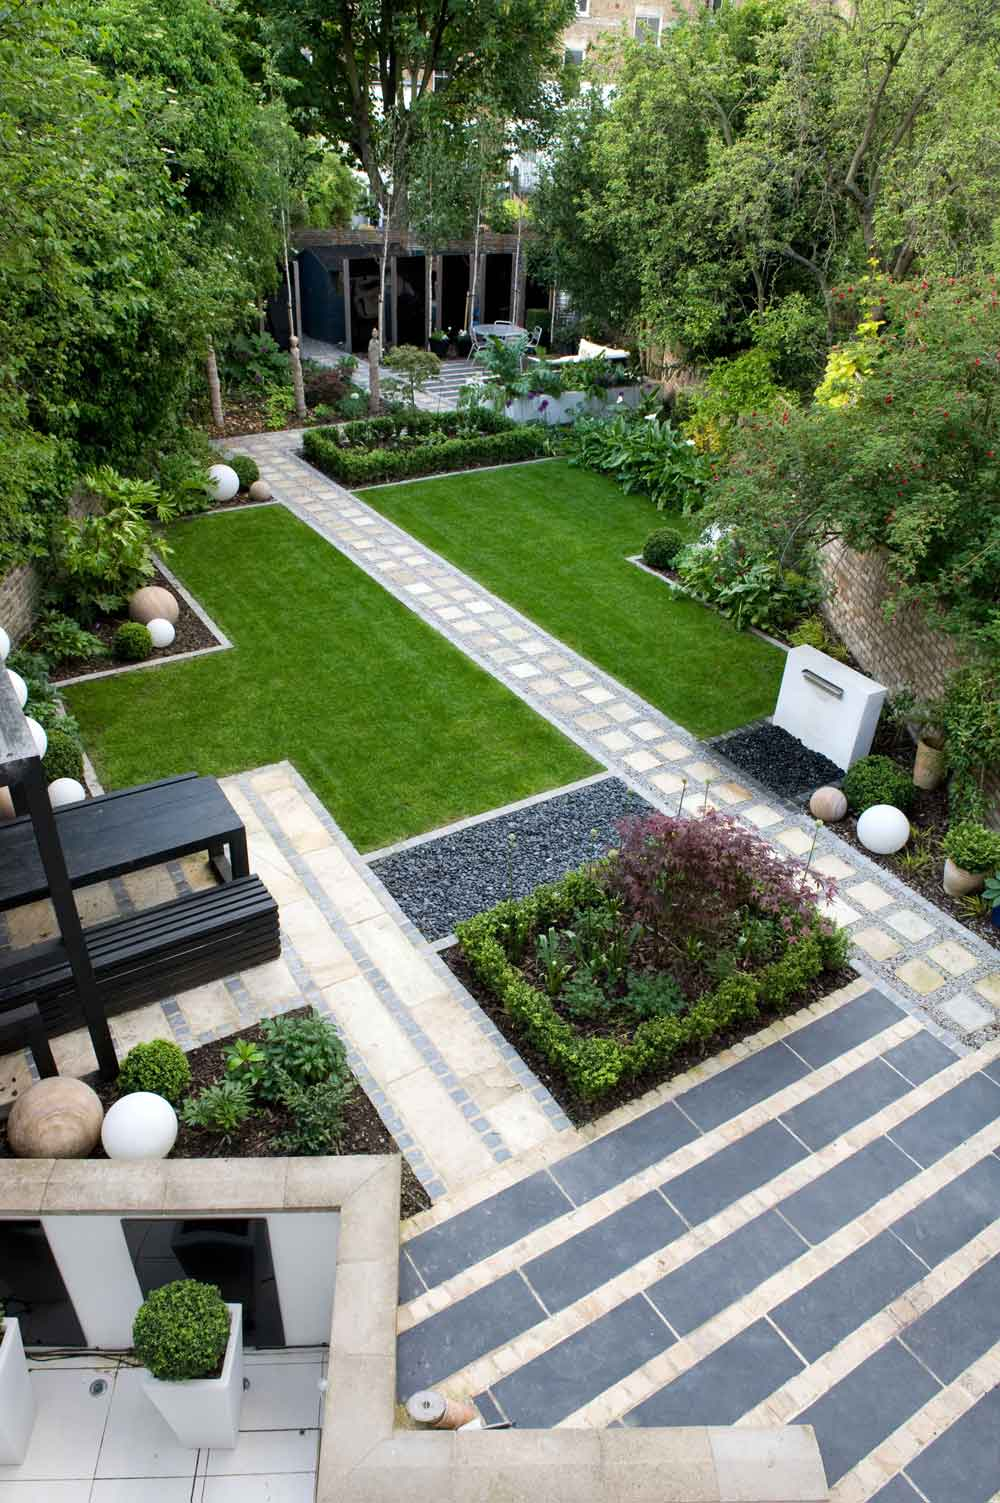 High Quality Before U0026 After: A Modern Japanese Garden In North London, On Design*Sponge